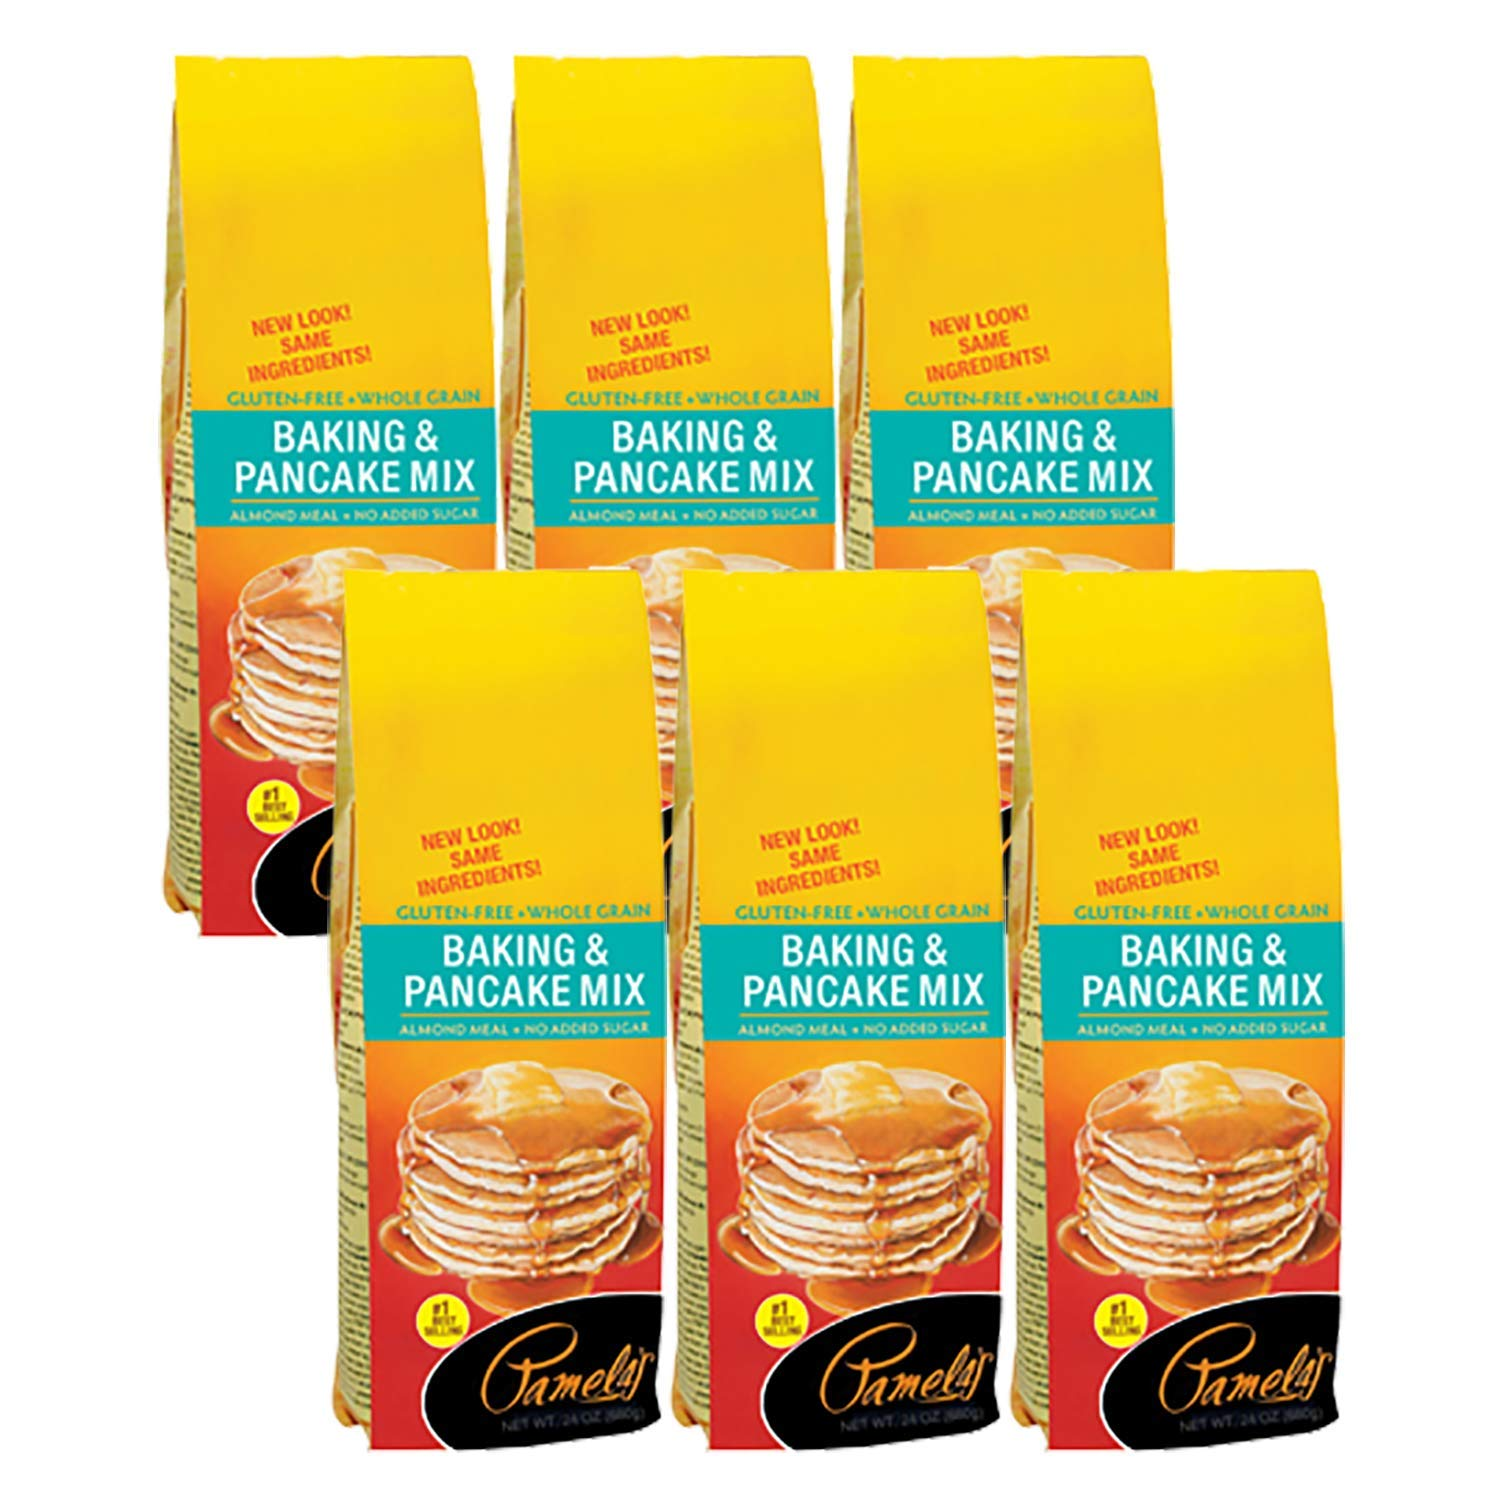 Pamela's Products Gluten and Wheat Free Baking and Pancake Mix - 24 oz- (Pack - 6) by Pamela's Products